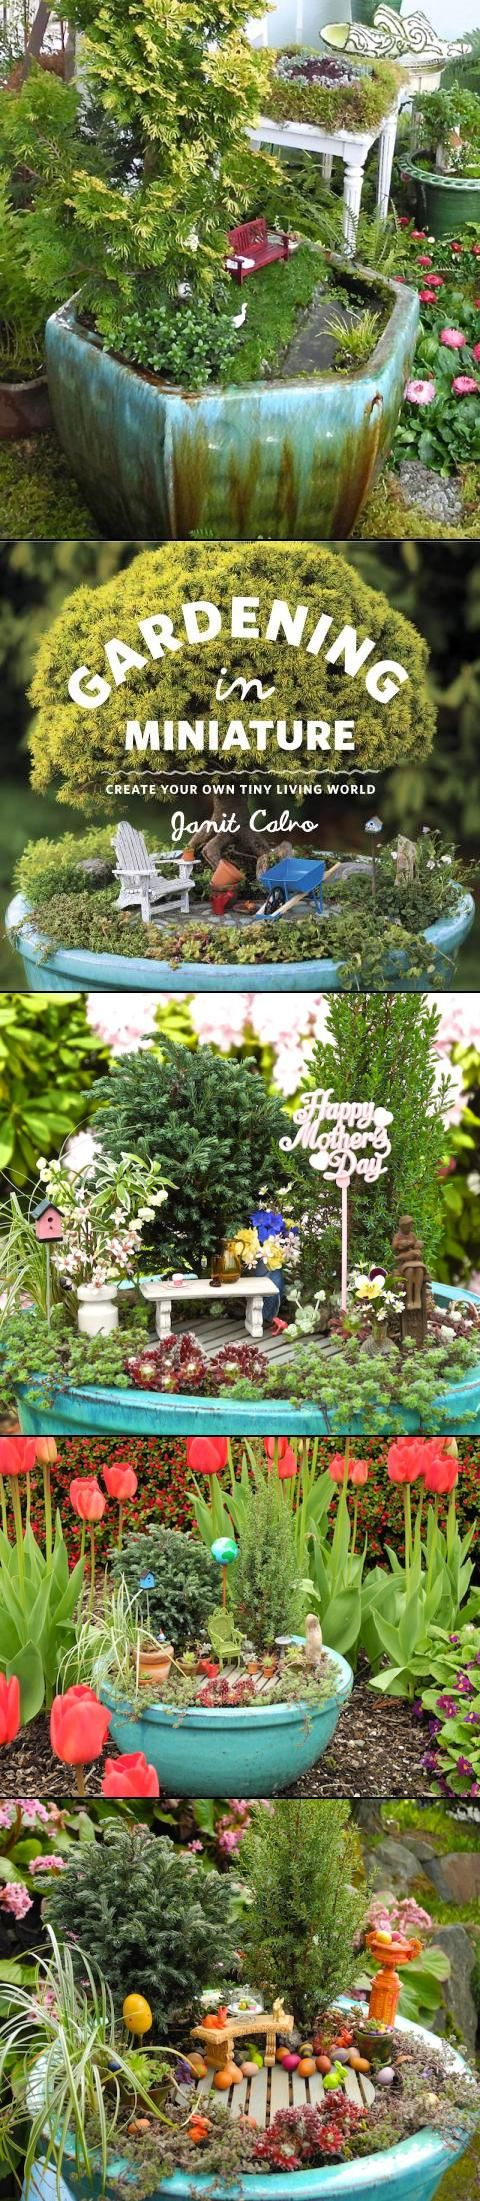 holiday mini fairy garden ideas.  I like the one with water incorporated.